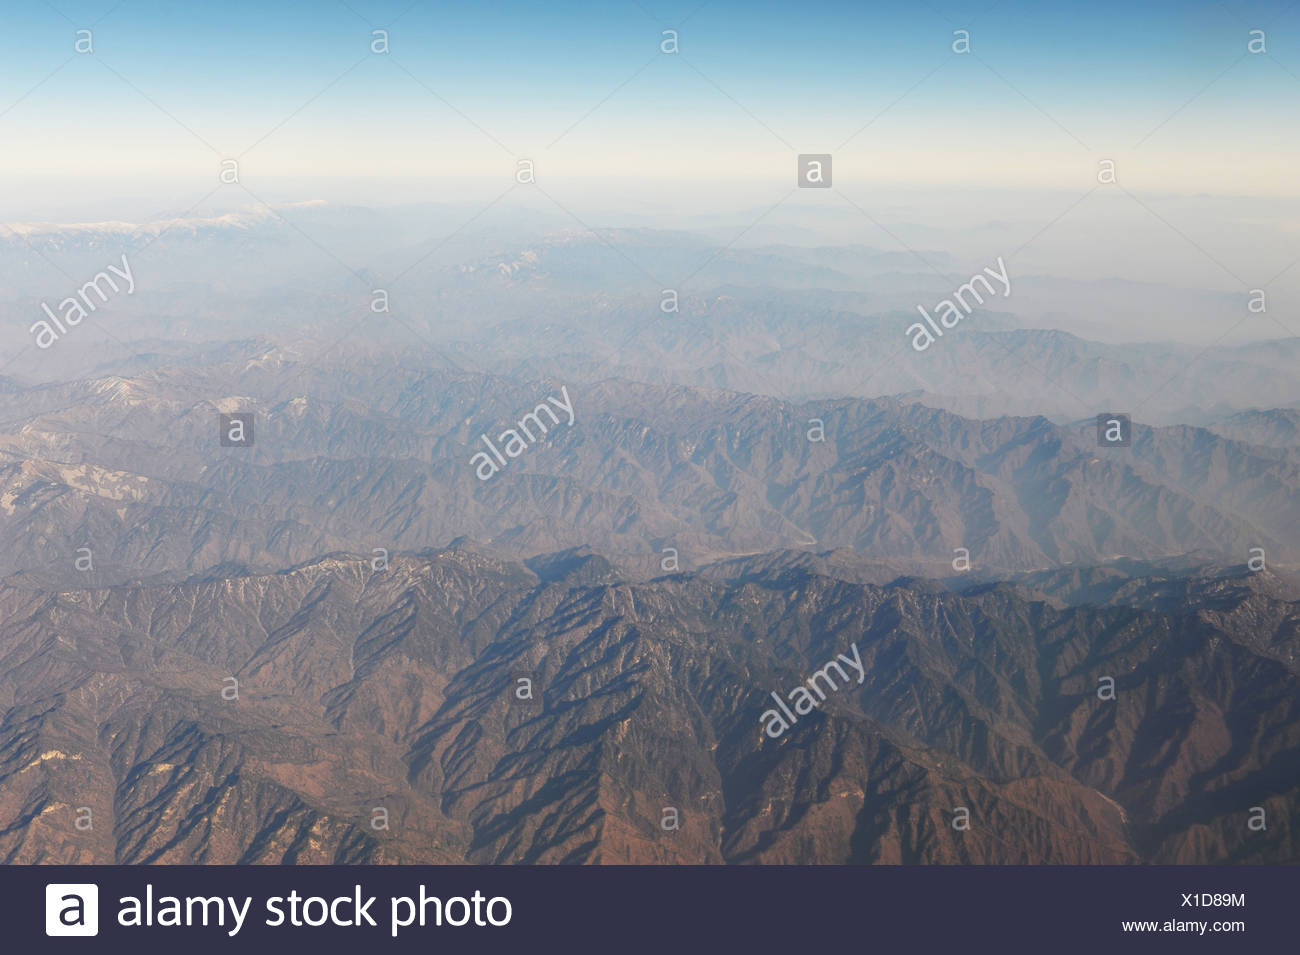 Aerial view of undeveloped land over Gansu, China - Stock Image